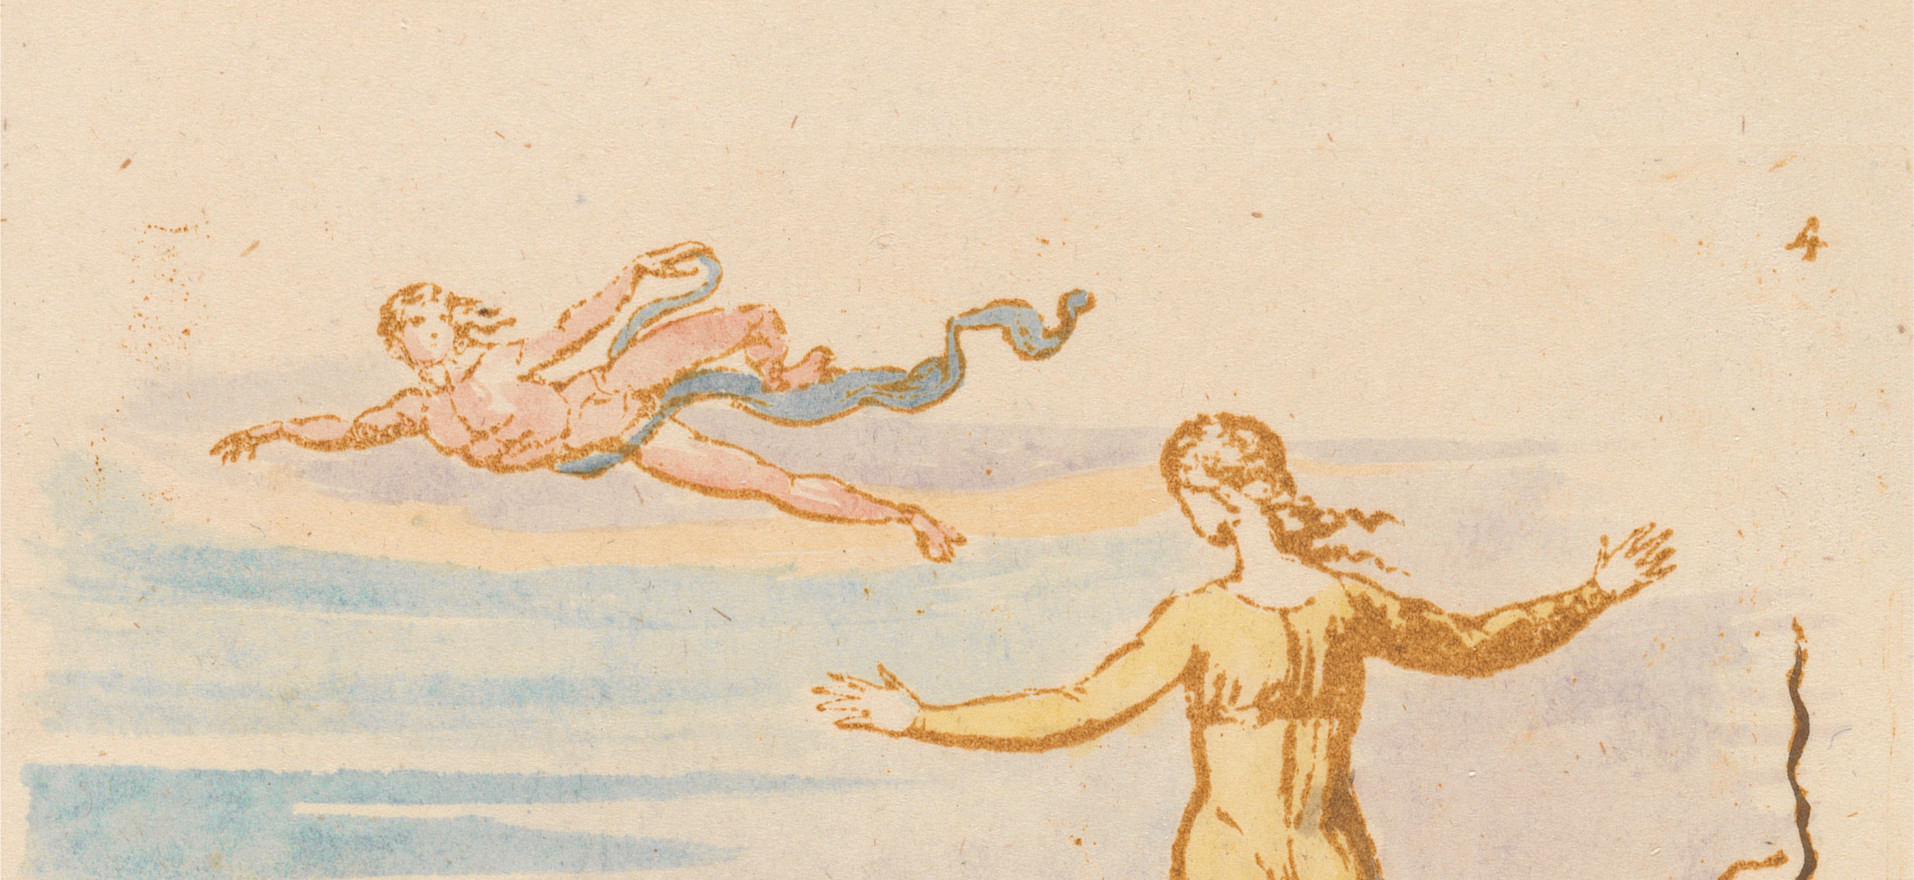 detail from Book of Thel, Plate 6, c. 1789.